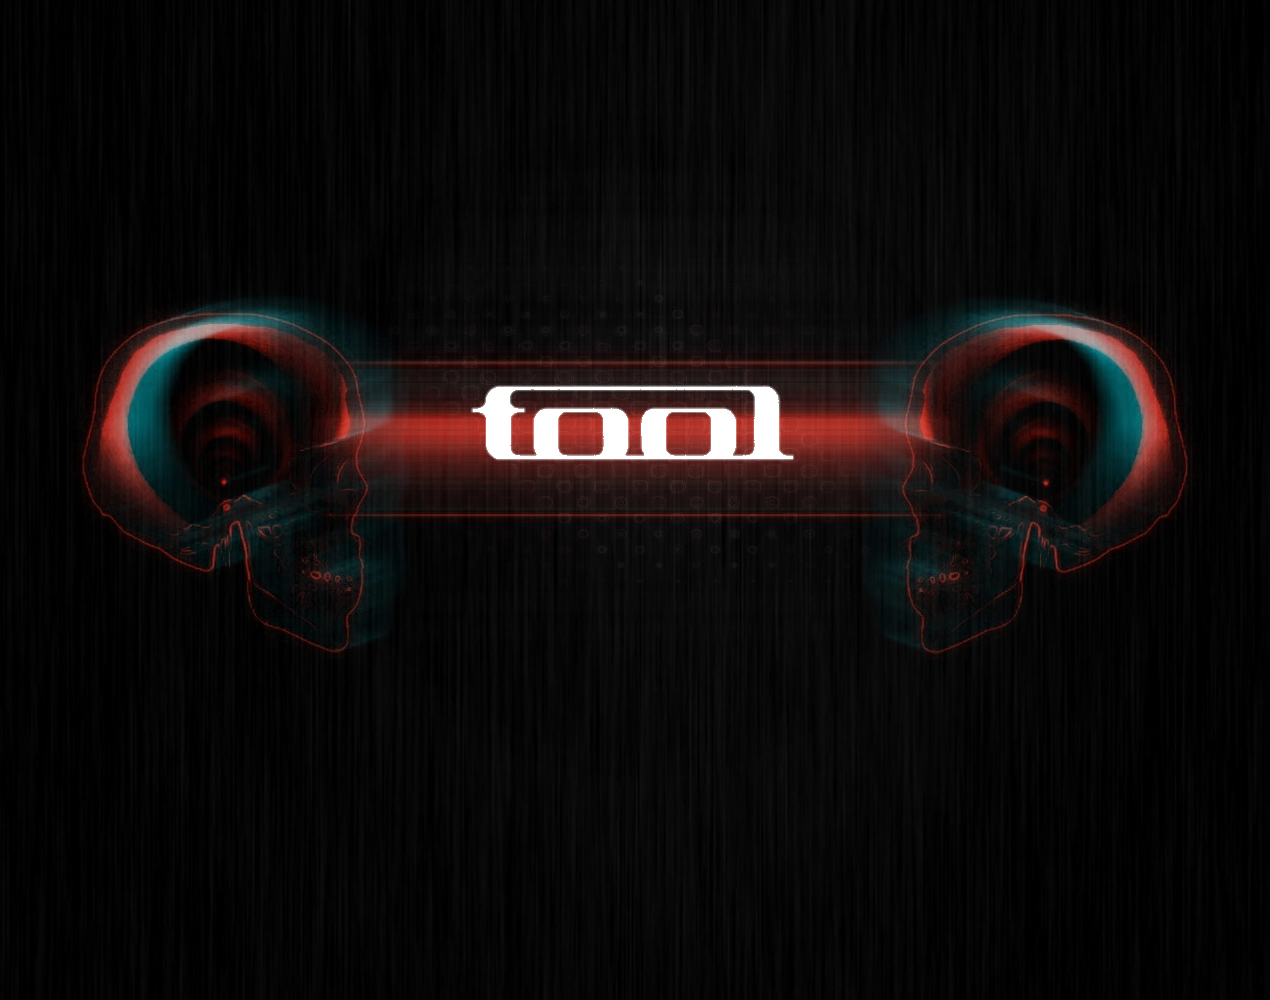 Tool Wallpaper By Lateralust On Deviantart